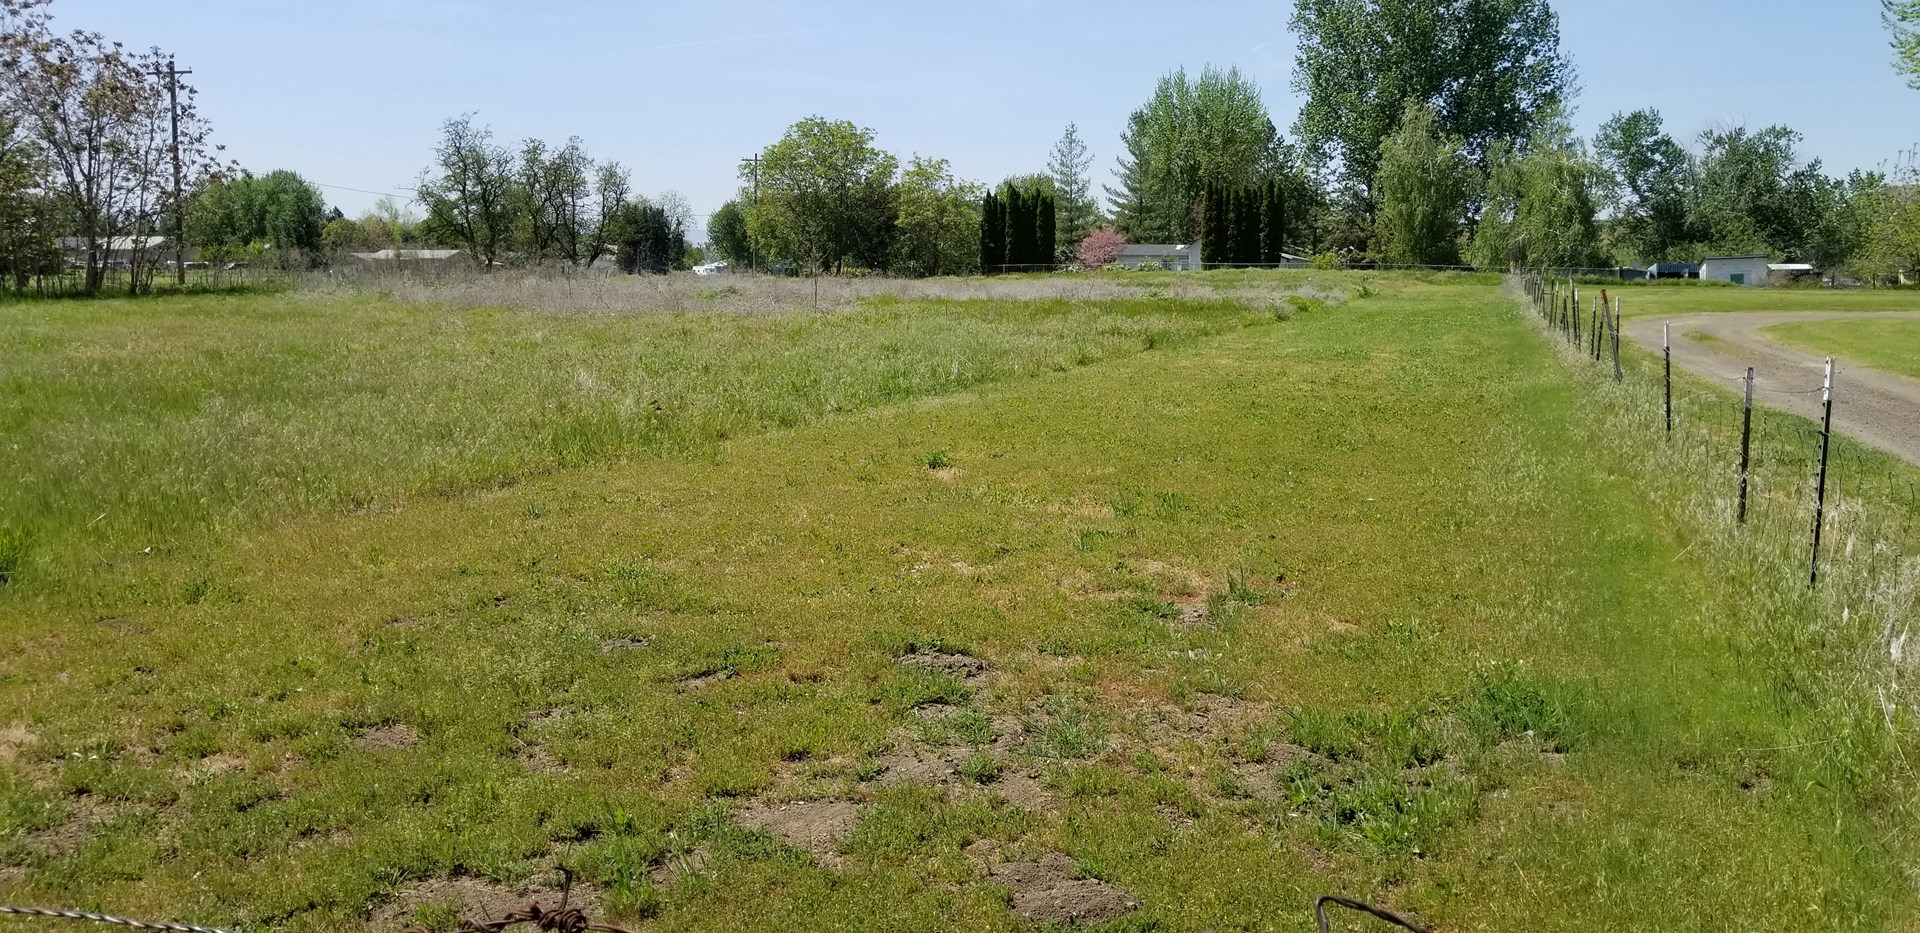 Prime location 1 Acre Lot close to Walla Walla University